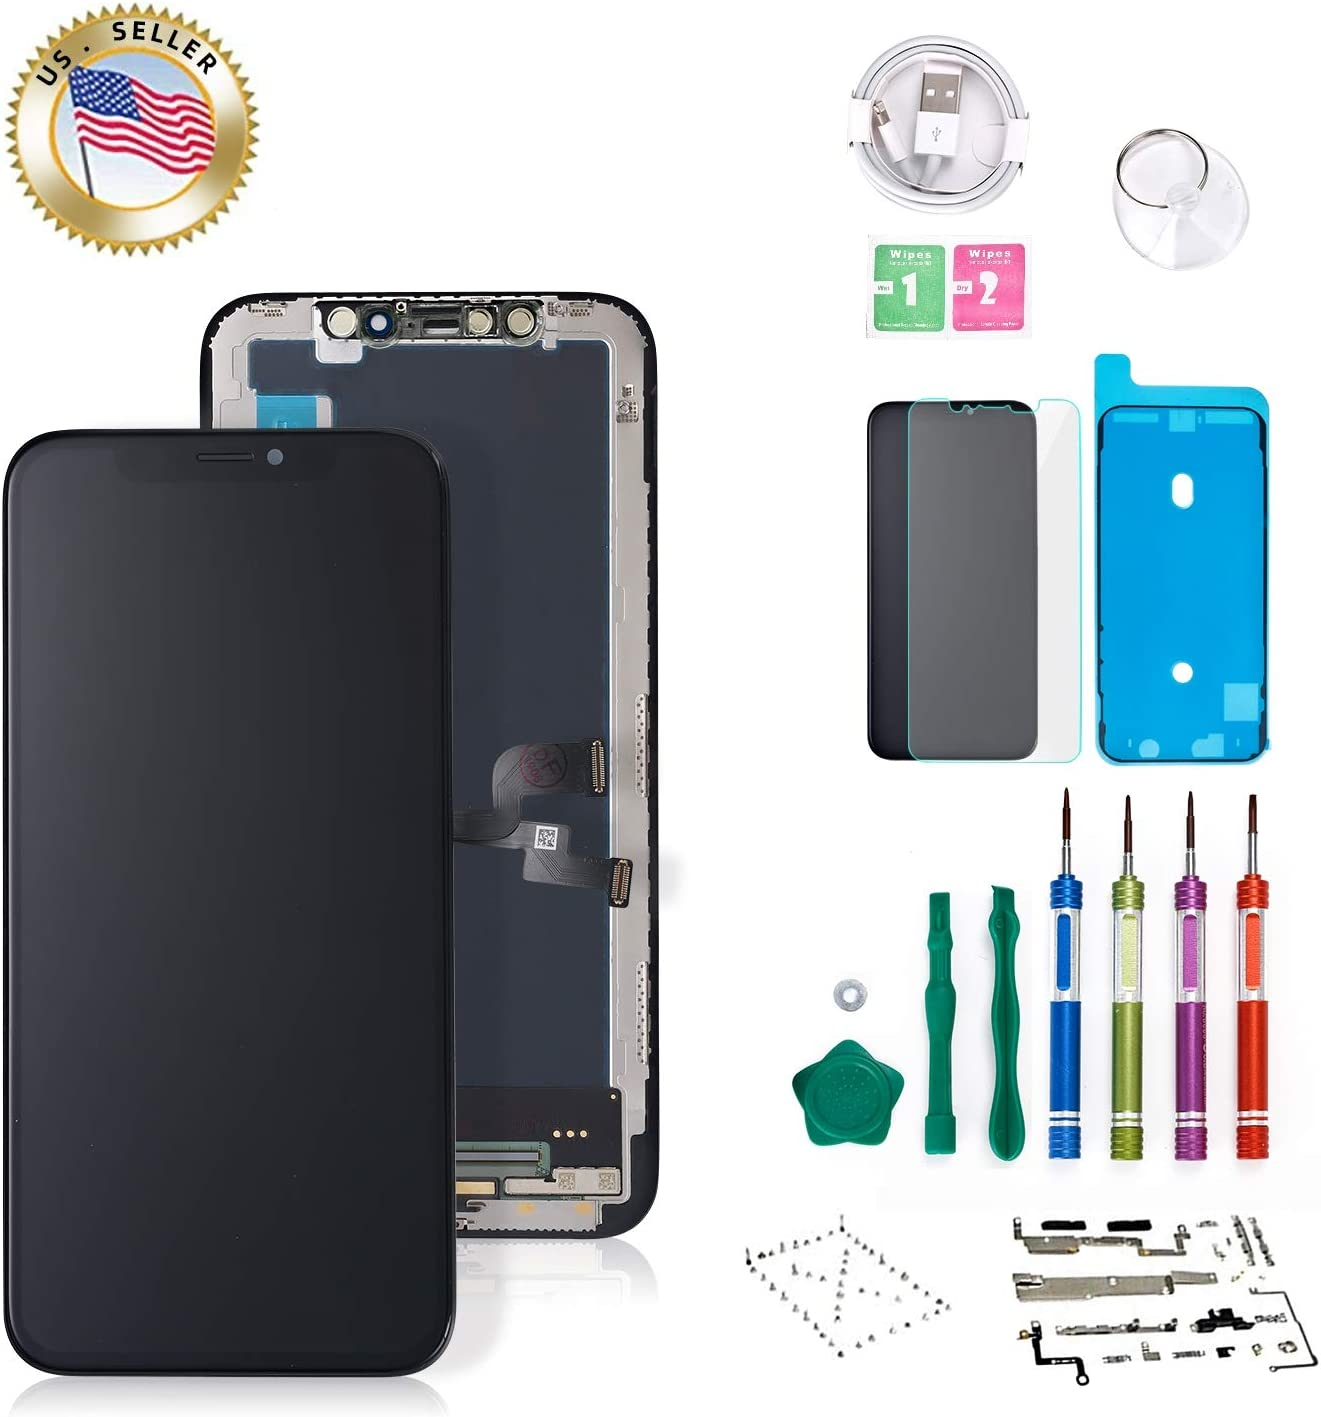 for iPhone X Screen Replacement OLED 5.8 inch Touch Screen Display Digitizer Repair Kit Assembly with Complete Repair Tools and Screen Protector NOT LCD